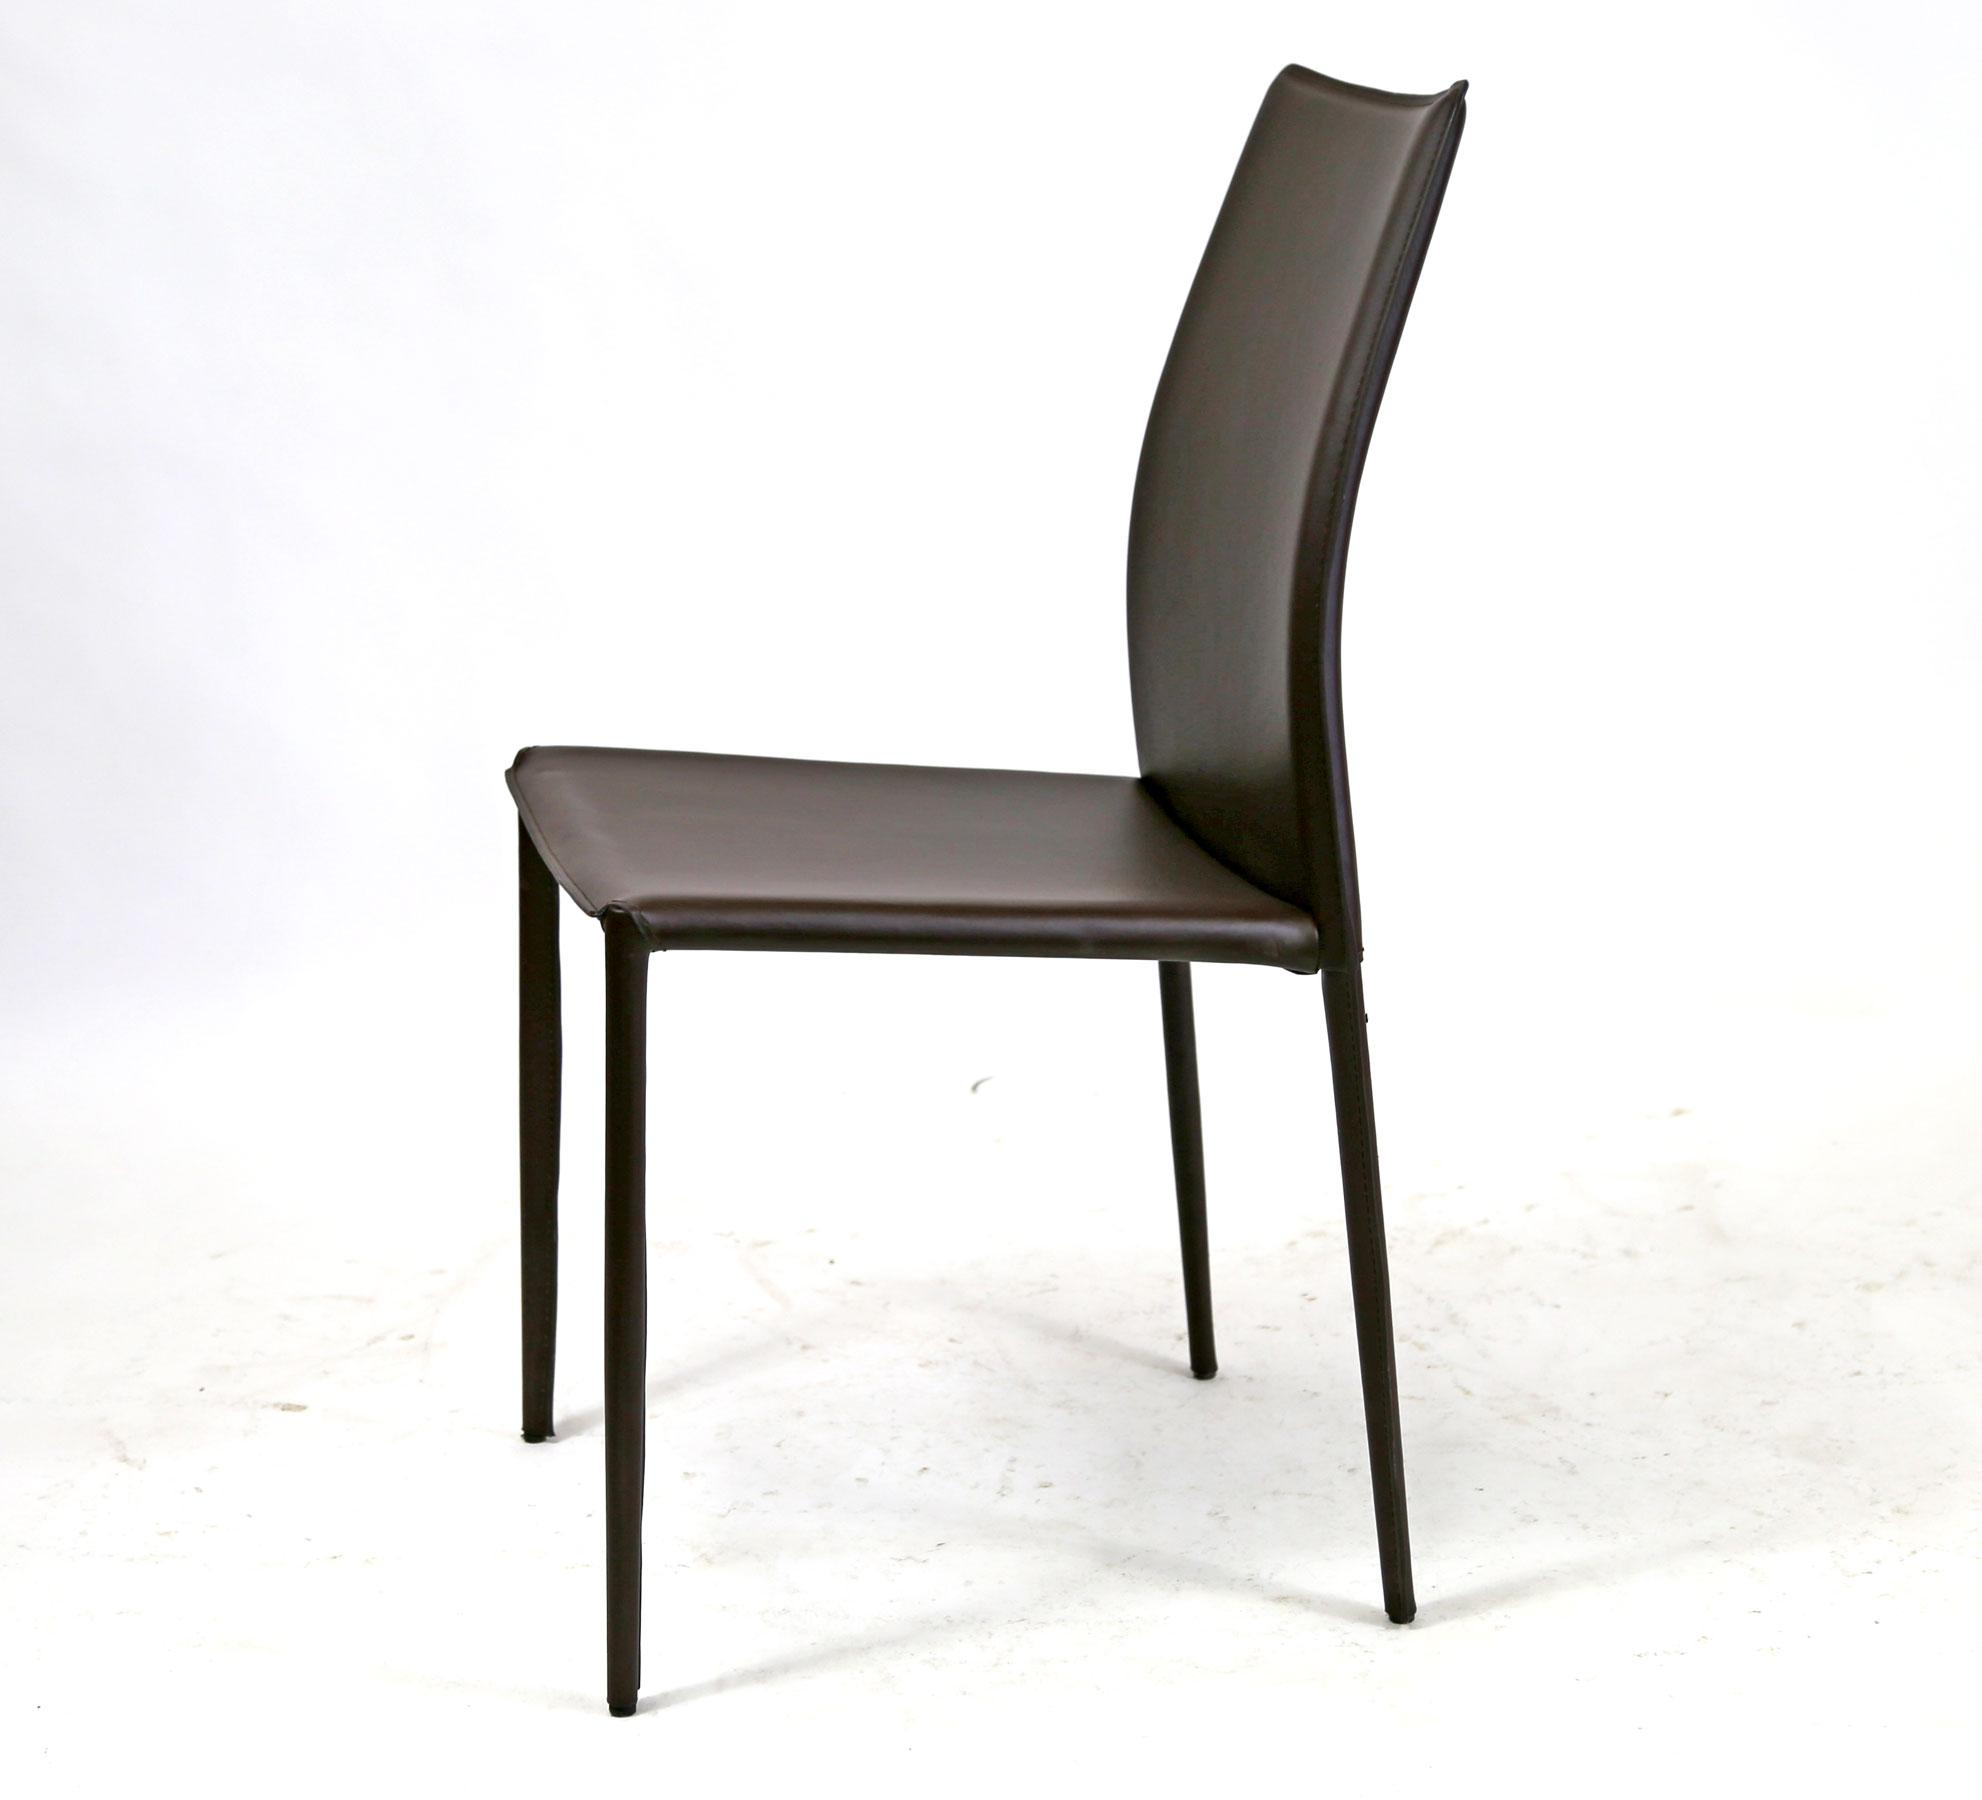 Attirant Alphaville Design Lily Brown Leather Dining Chair For Sale   Image 4 Of 11